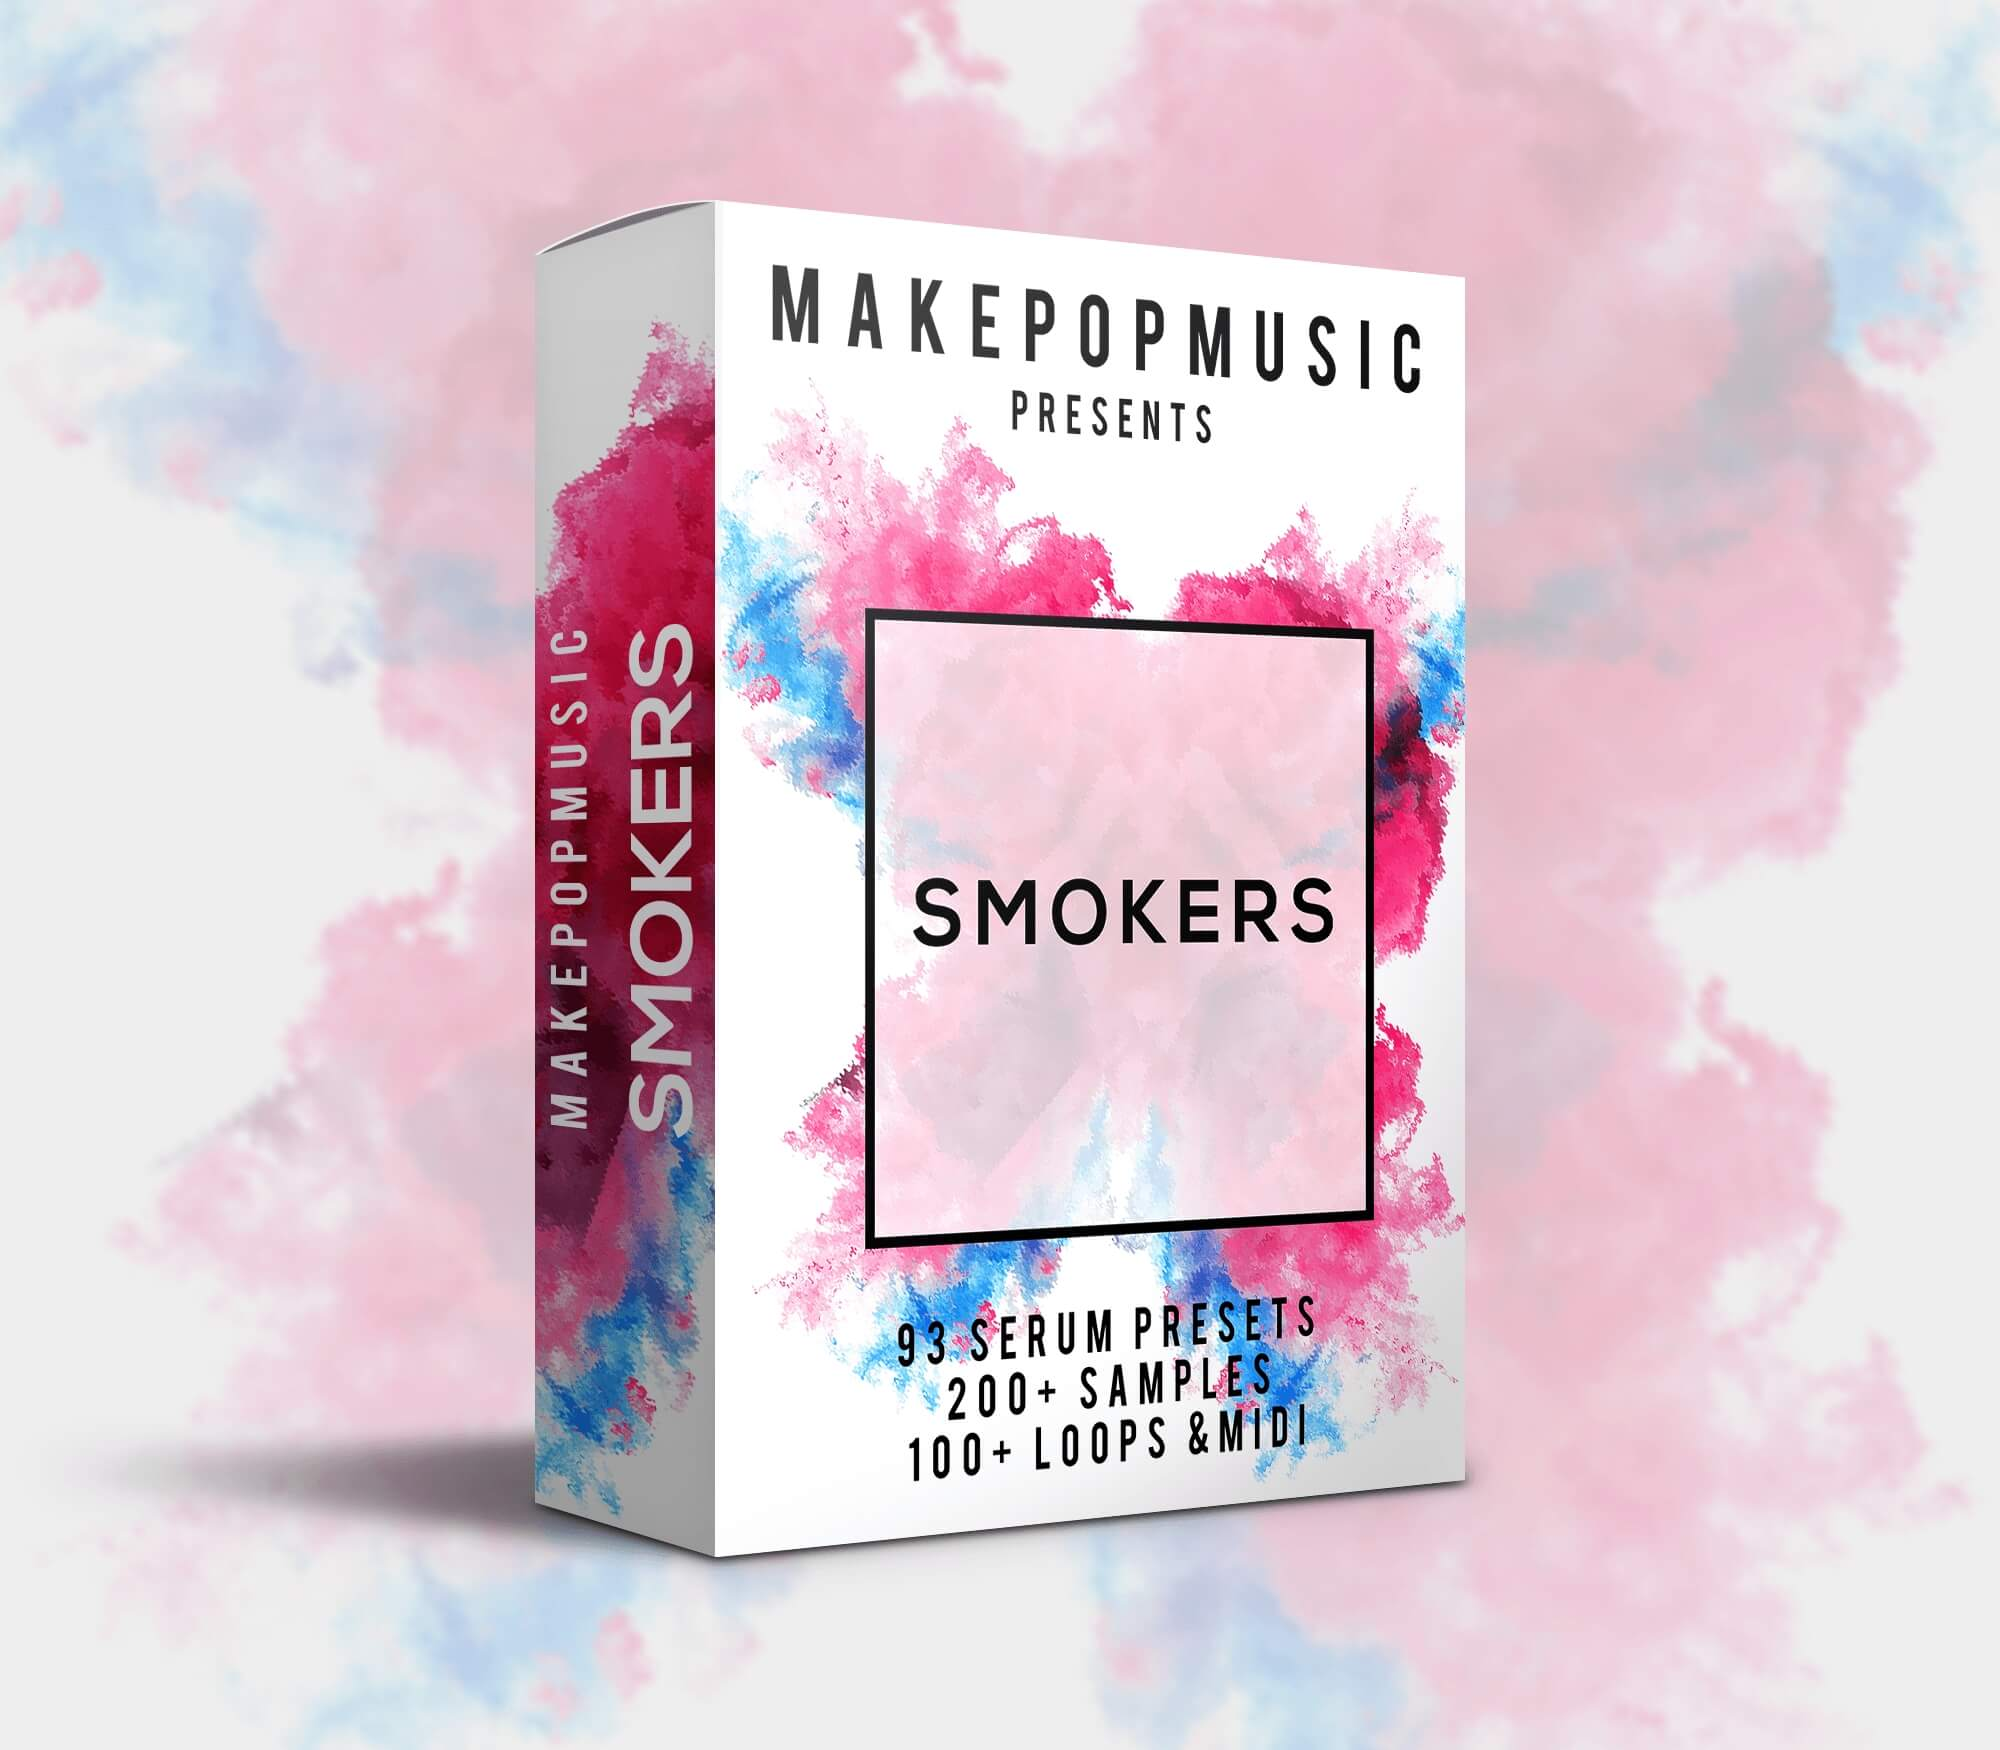 Woodshed Audio Launches Smokers For Serum 50 Off Flash Sale